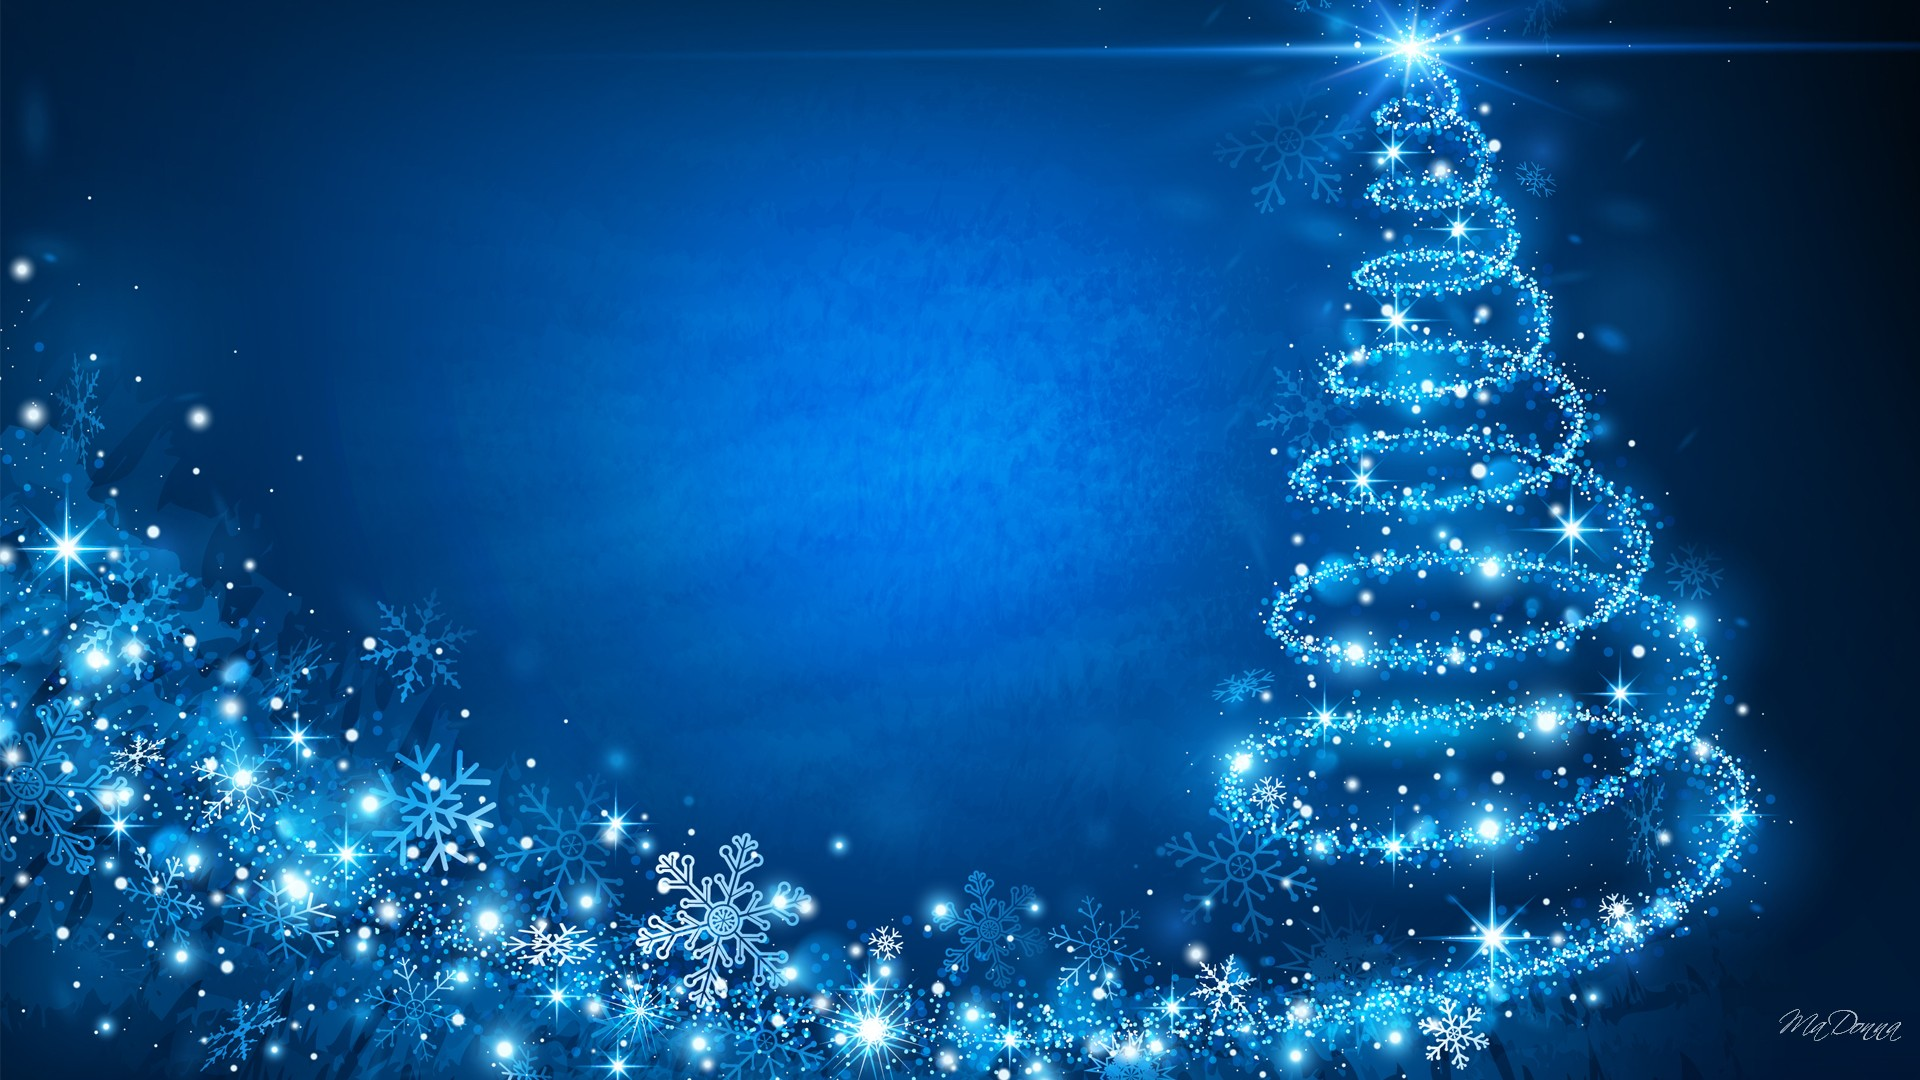 blue christmas background wallpaper images